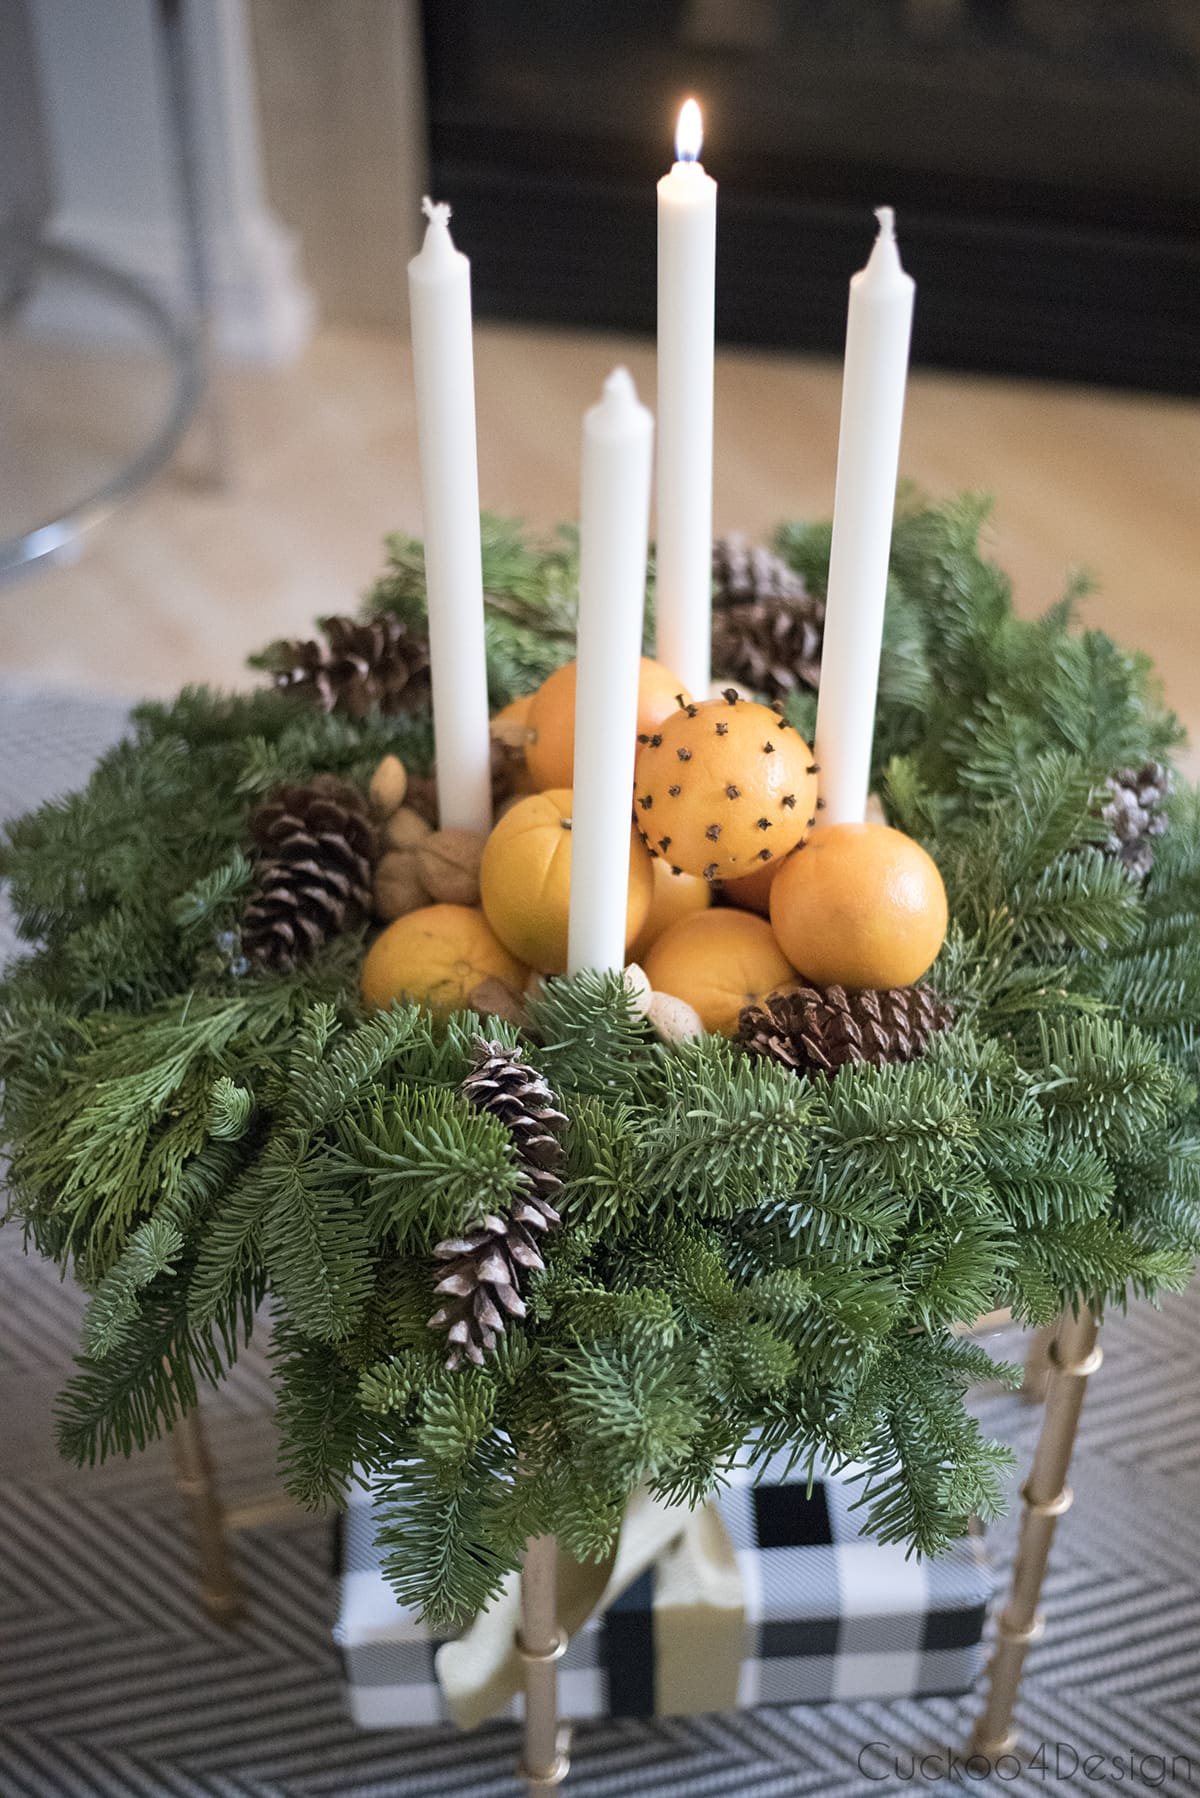 advent wreath as natural Christmas decorations